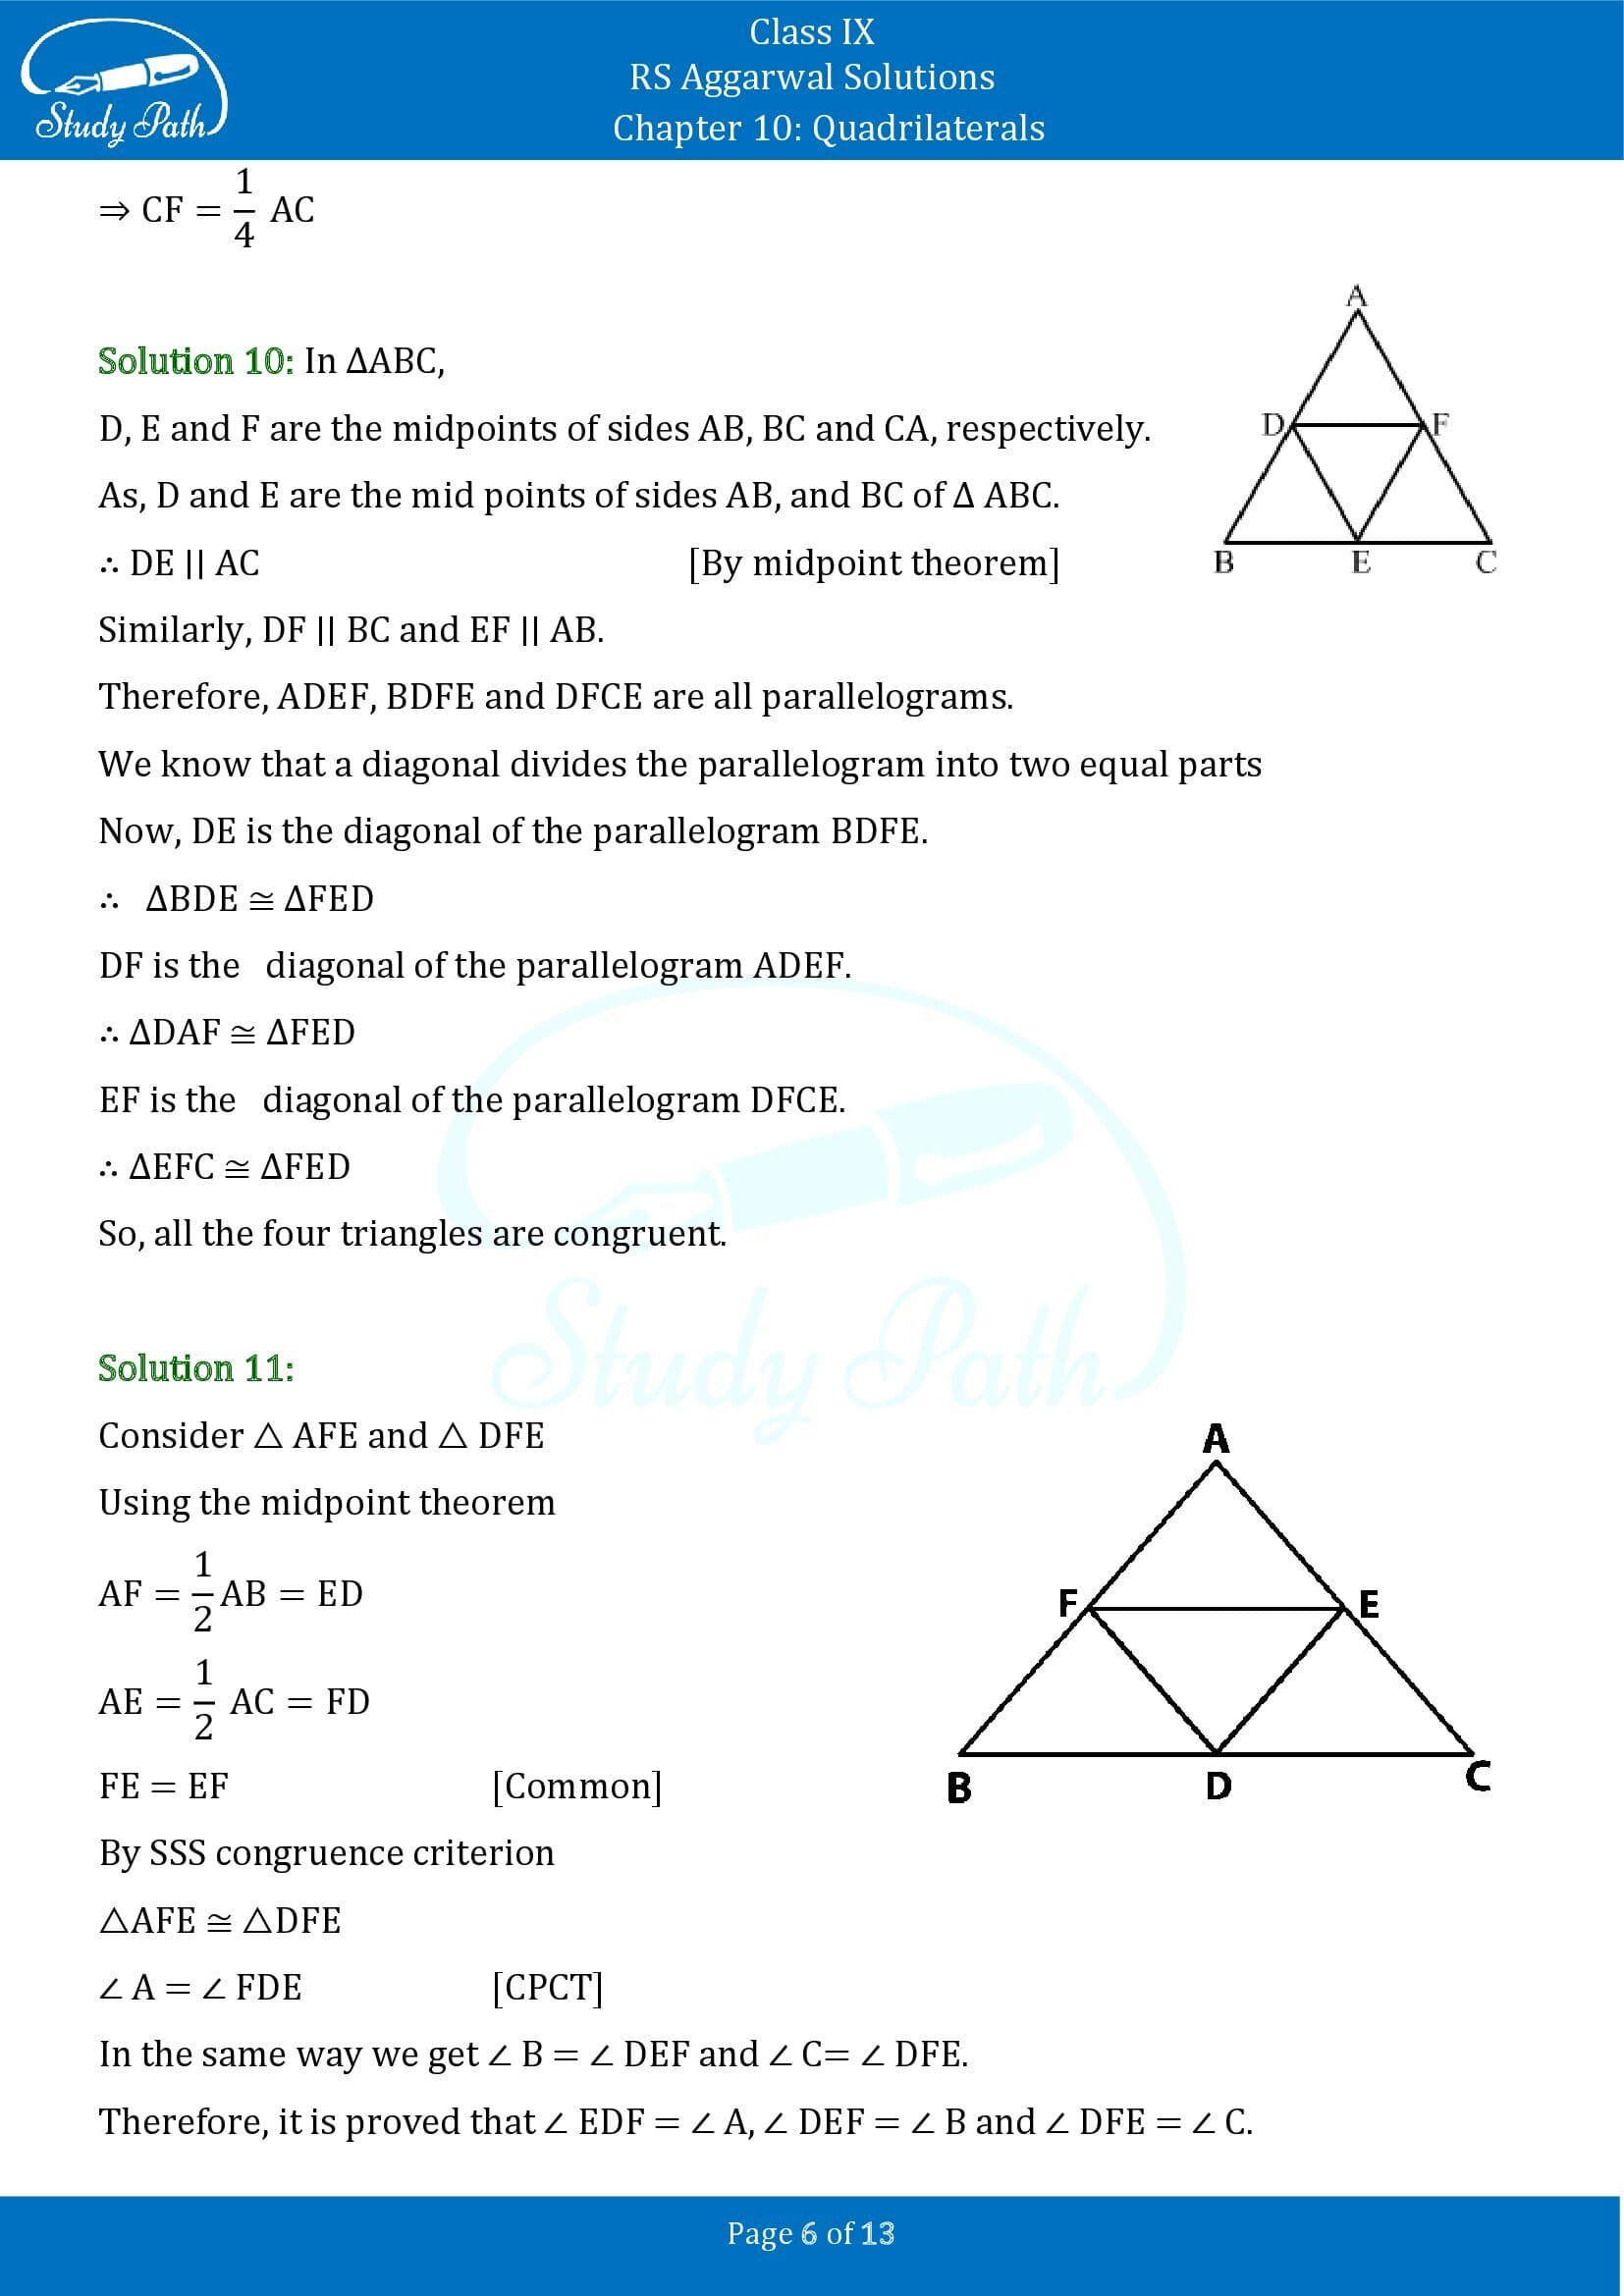 RS Aggarwal Solutions Class 9 Chapter 10 Quadrilaterals Exercise 10C 00006